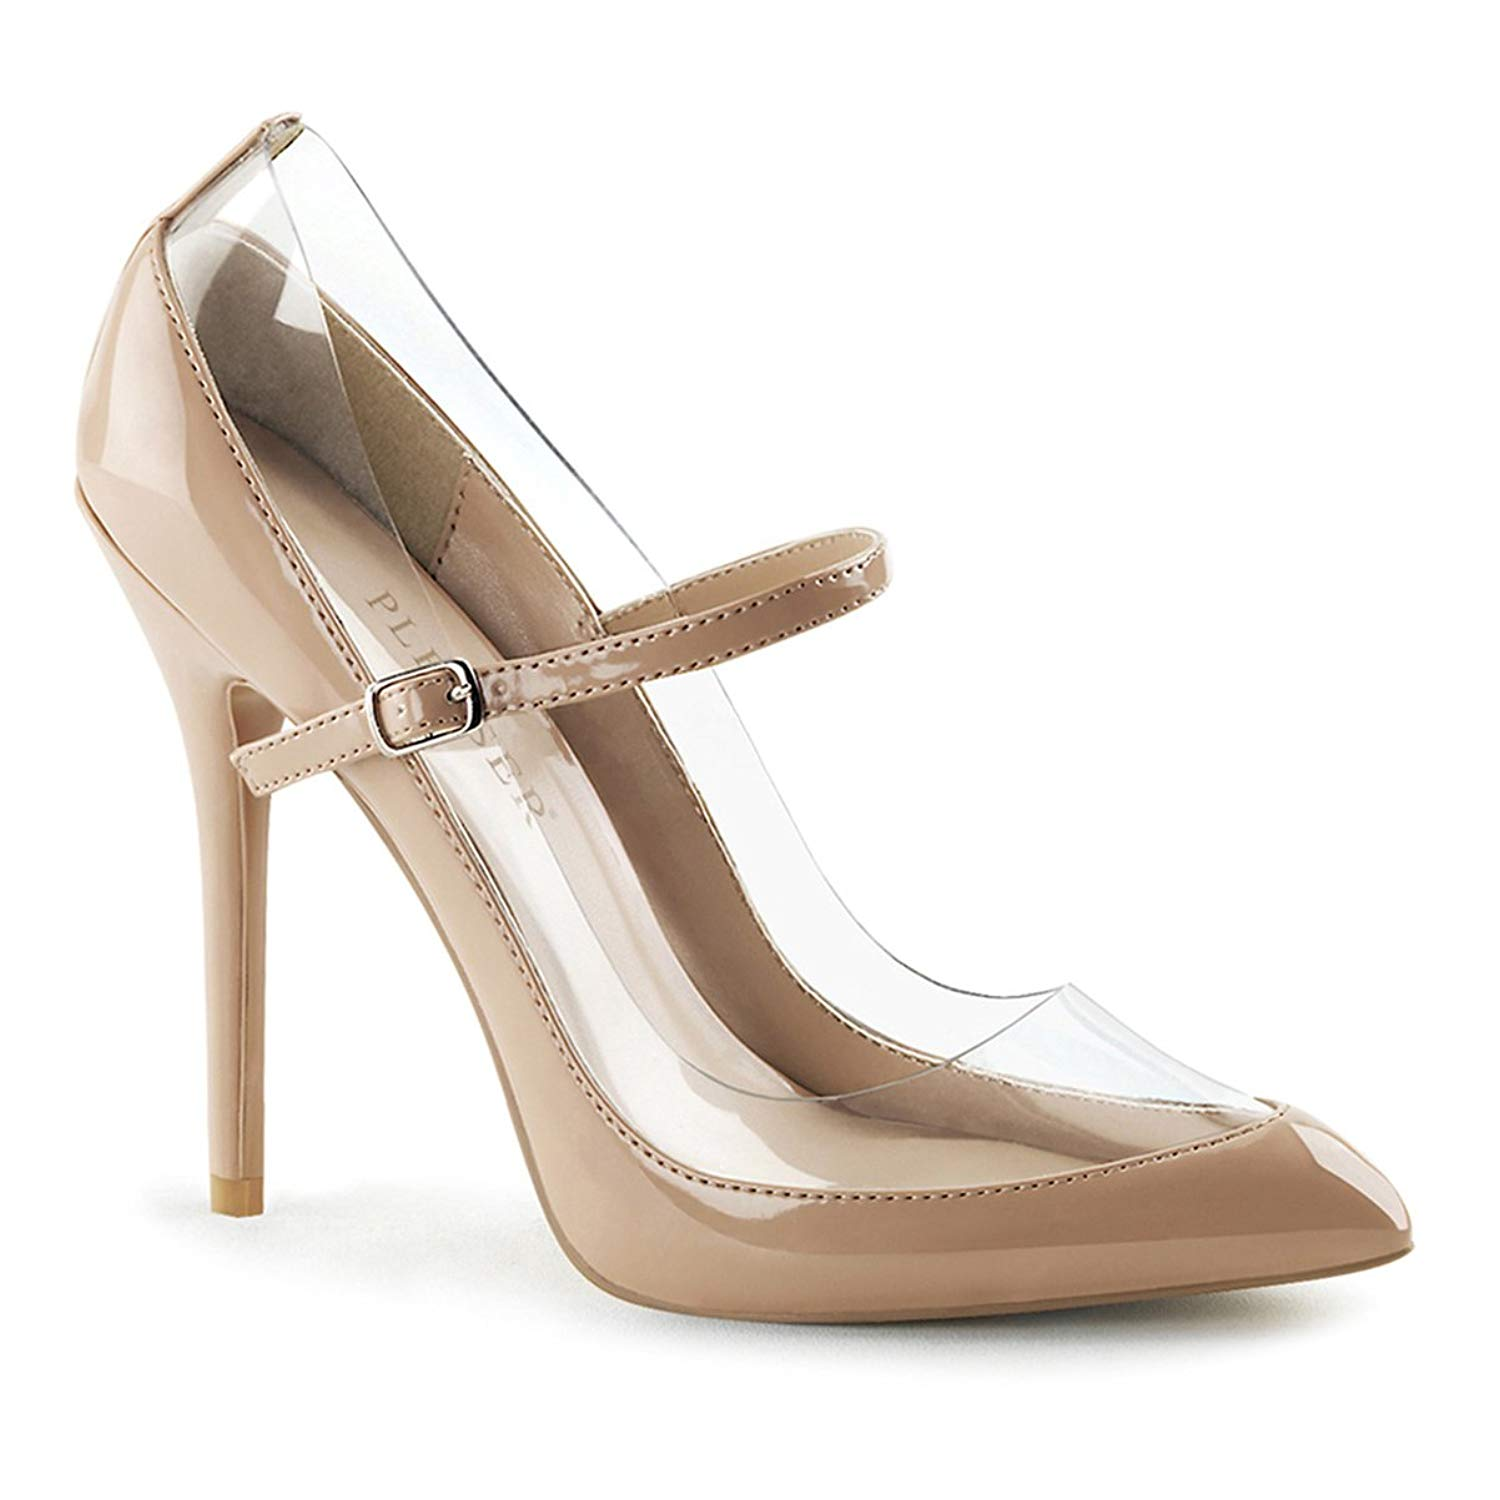 885fd72bd1cd Get Quotations · Summitfashions Womens Nude Color Shoes Pointed Toe Pumps  Mary Jane High Heels 5 inch Heels